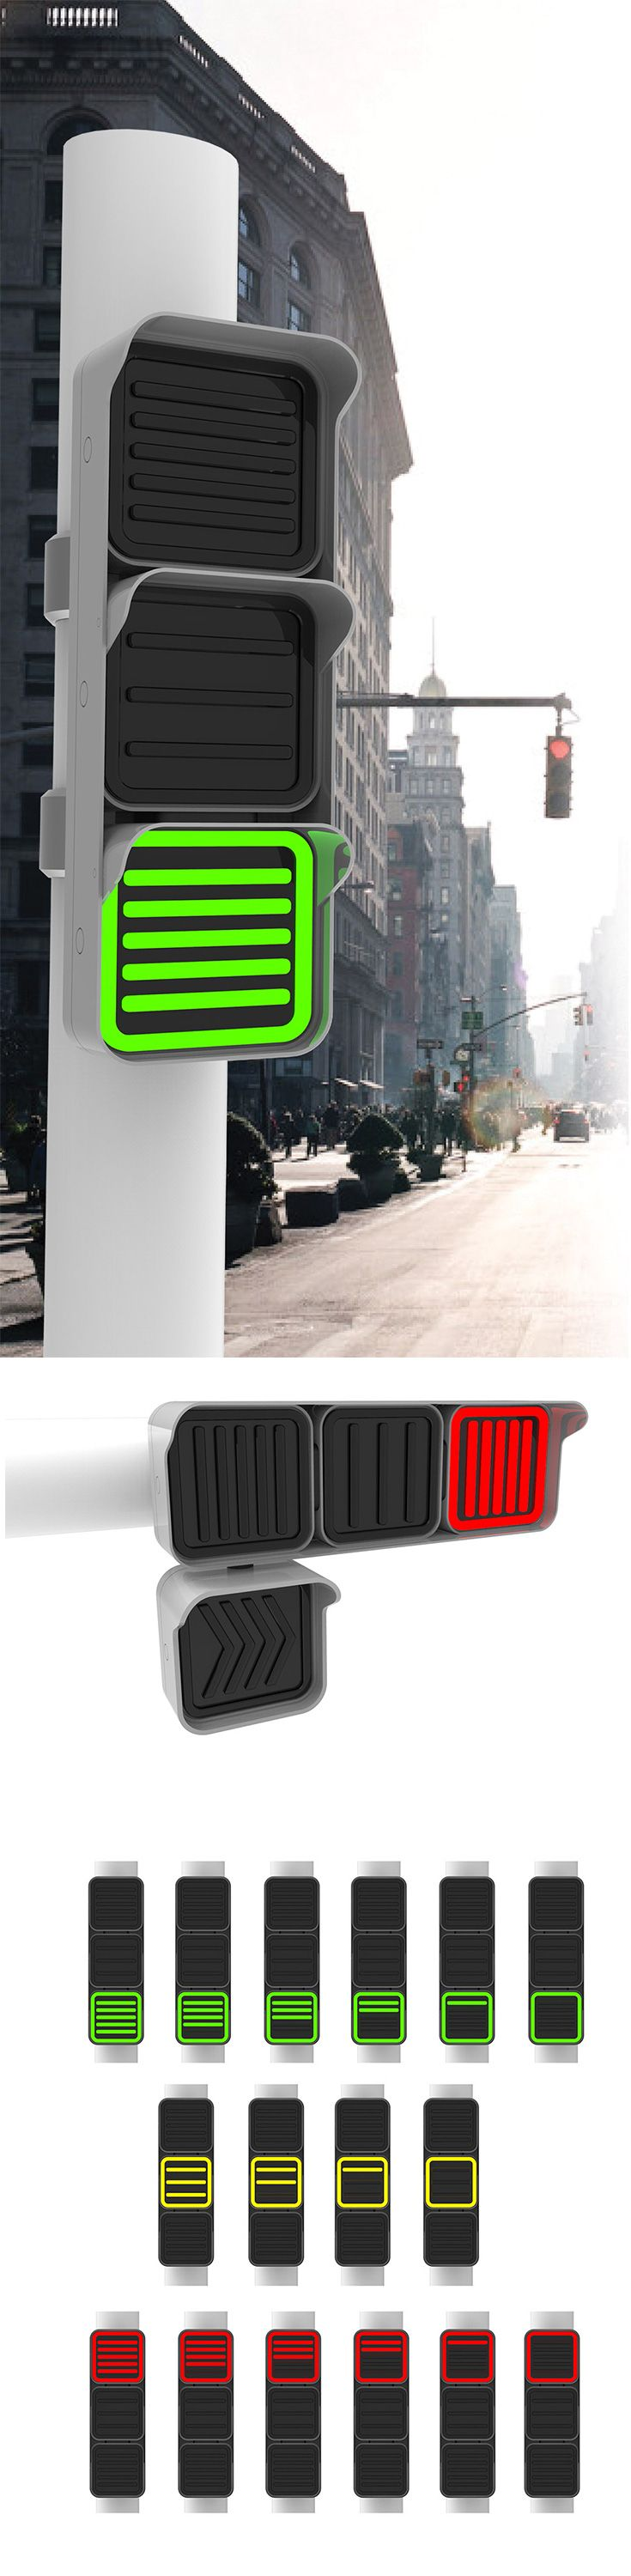 The only thing worse than a red light is not knowing when it's going to change. In fact, some are so long they'll leave you wondering if it's going to change at all! The FIK Light aims to alleviate this everyday stress by introducing an simplistic timer into the light itself. Its minimalistic design language is so easy anyone can read it.